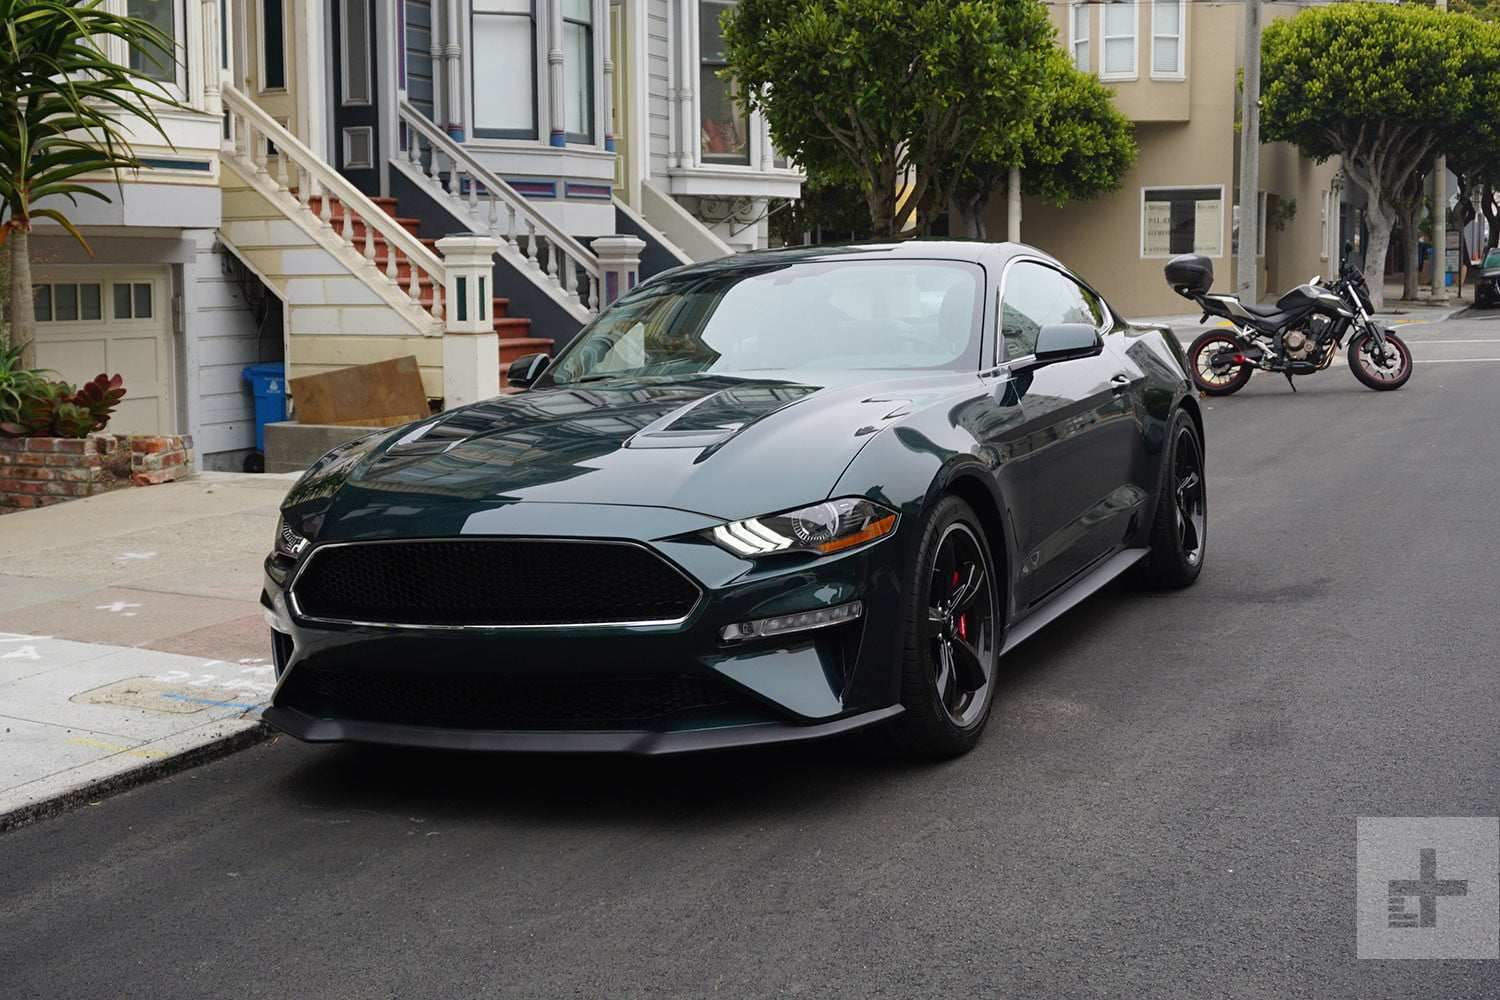 84 Great Best 2019 Ford Mustang Bullitt Picture Release Date And Review Research New with Best 2019 Ford Mustang Bullitt Picture Release Date And Review